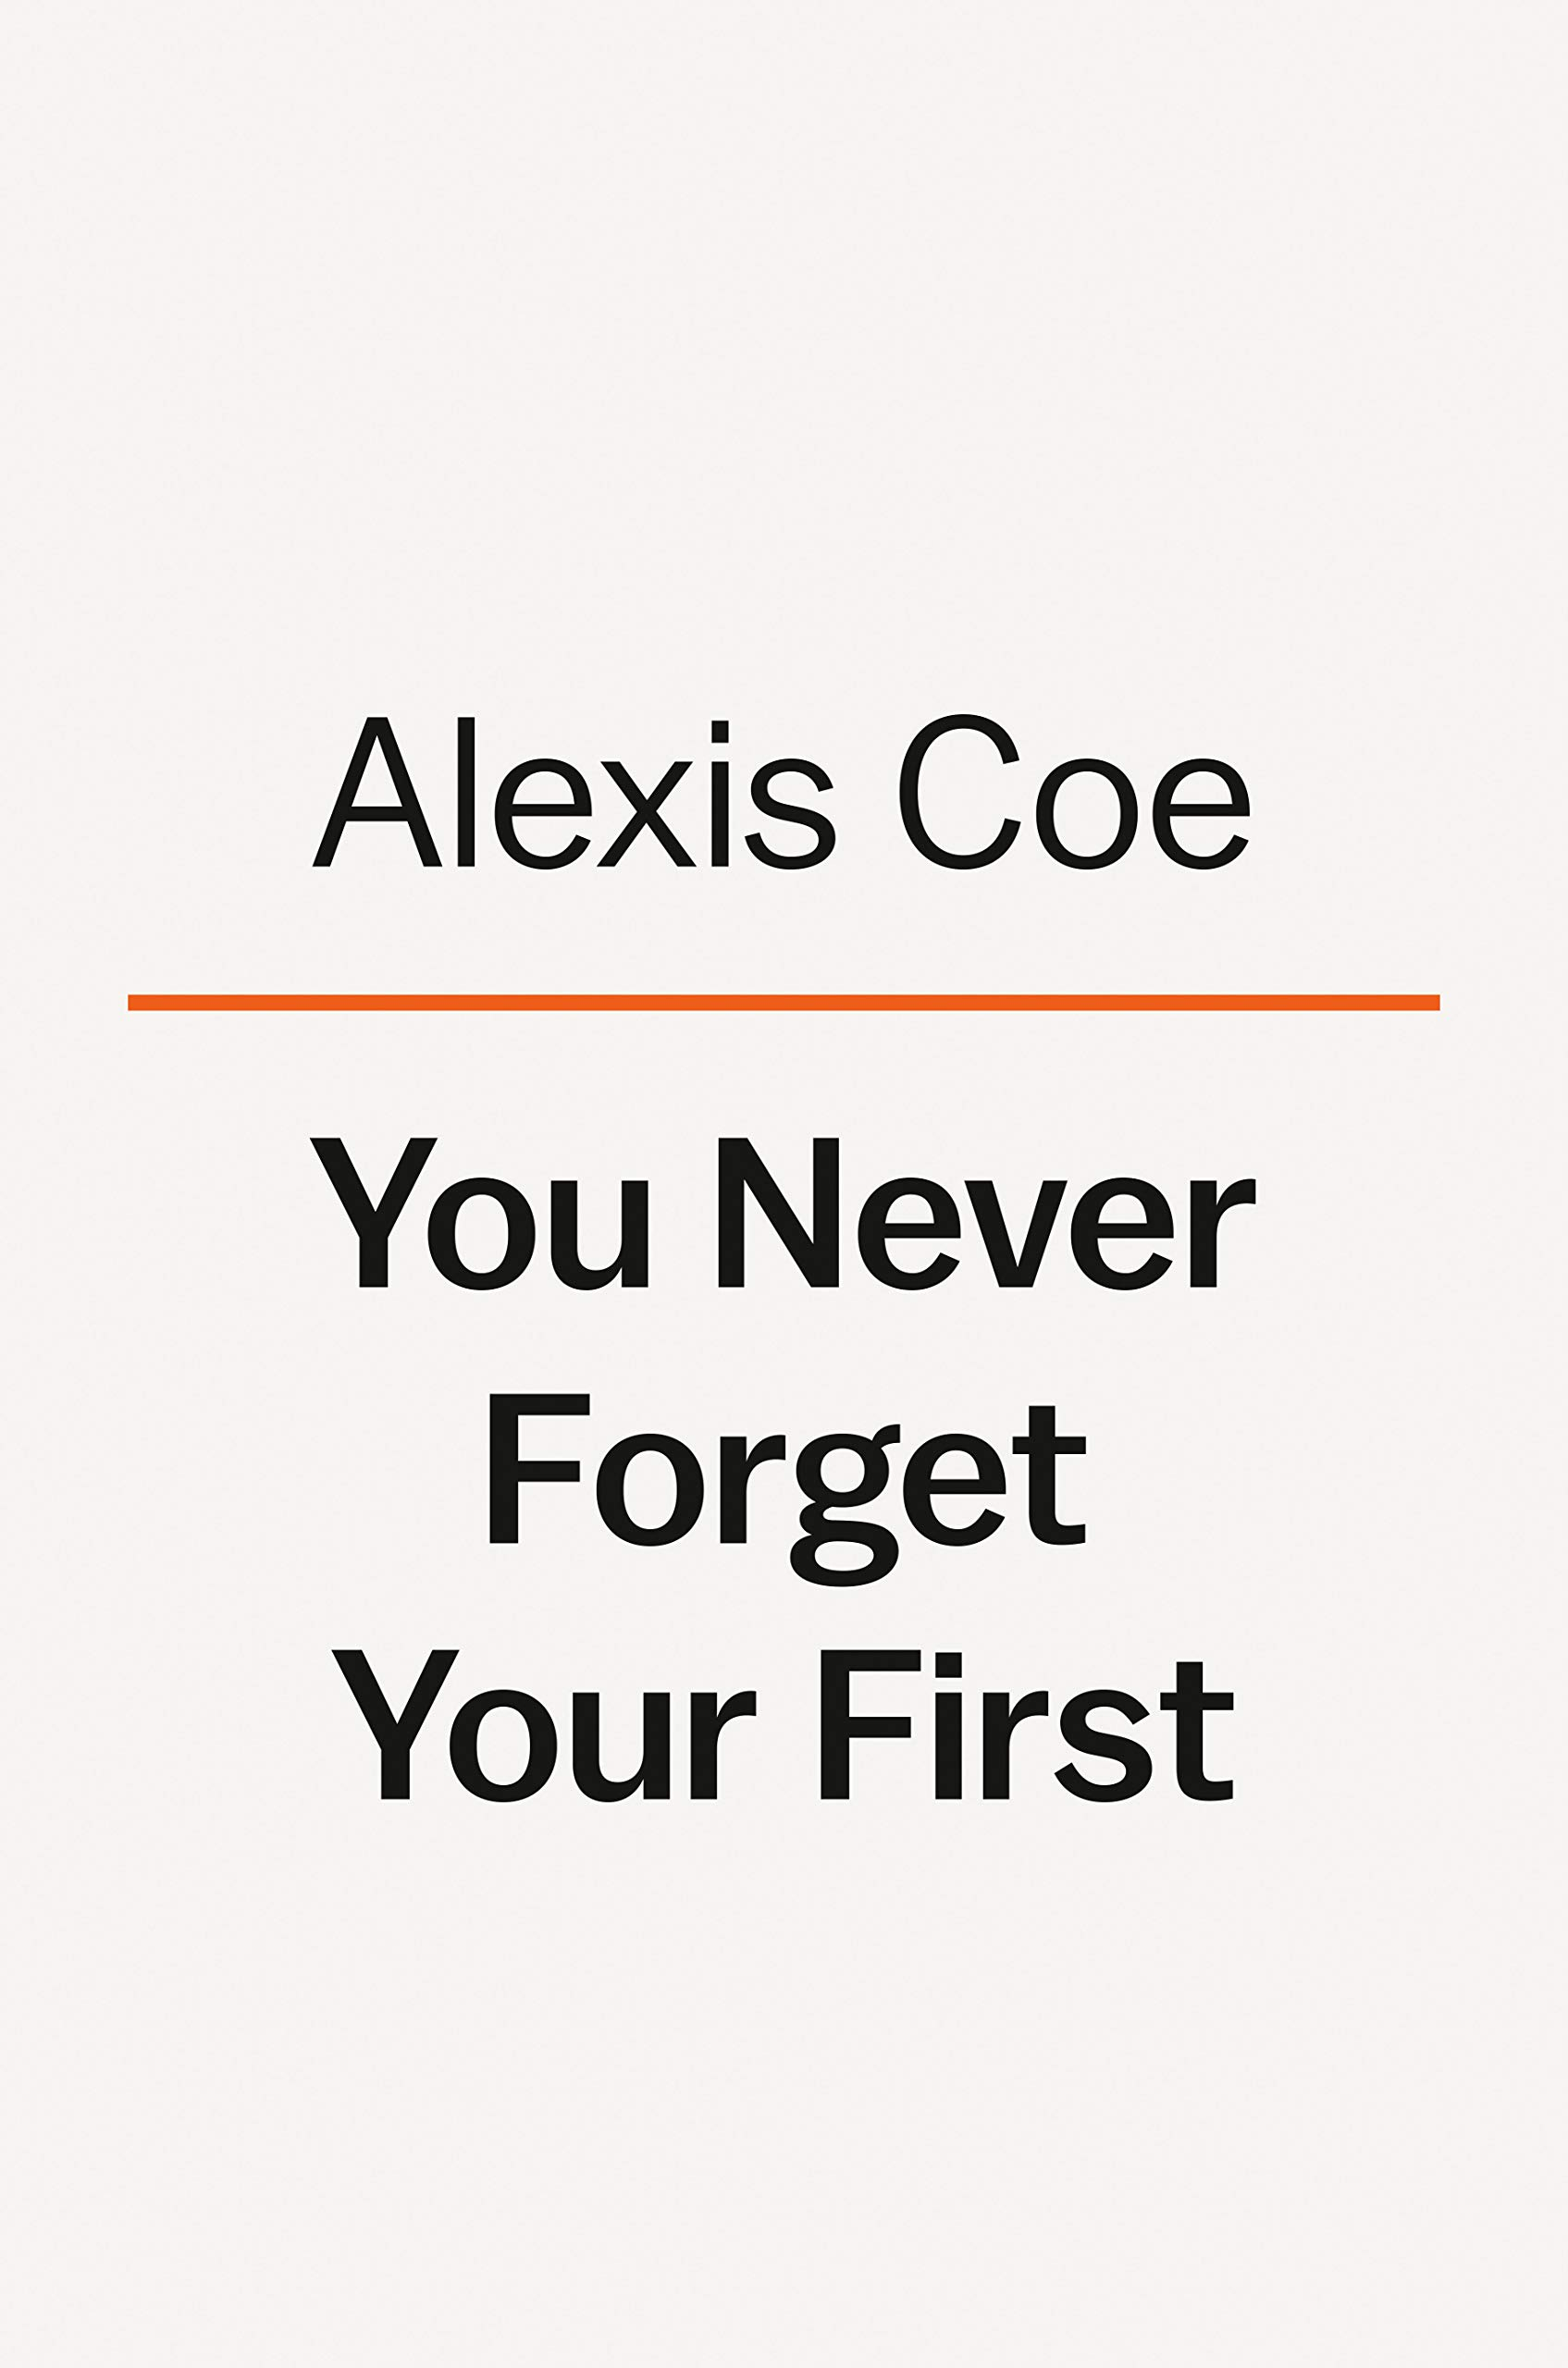 Best Selling Biographies 2020 Amazon.com: You Never Forget Your First: A Biography of George